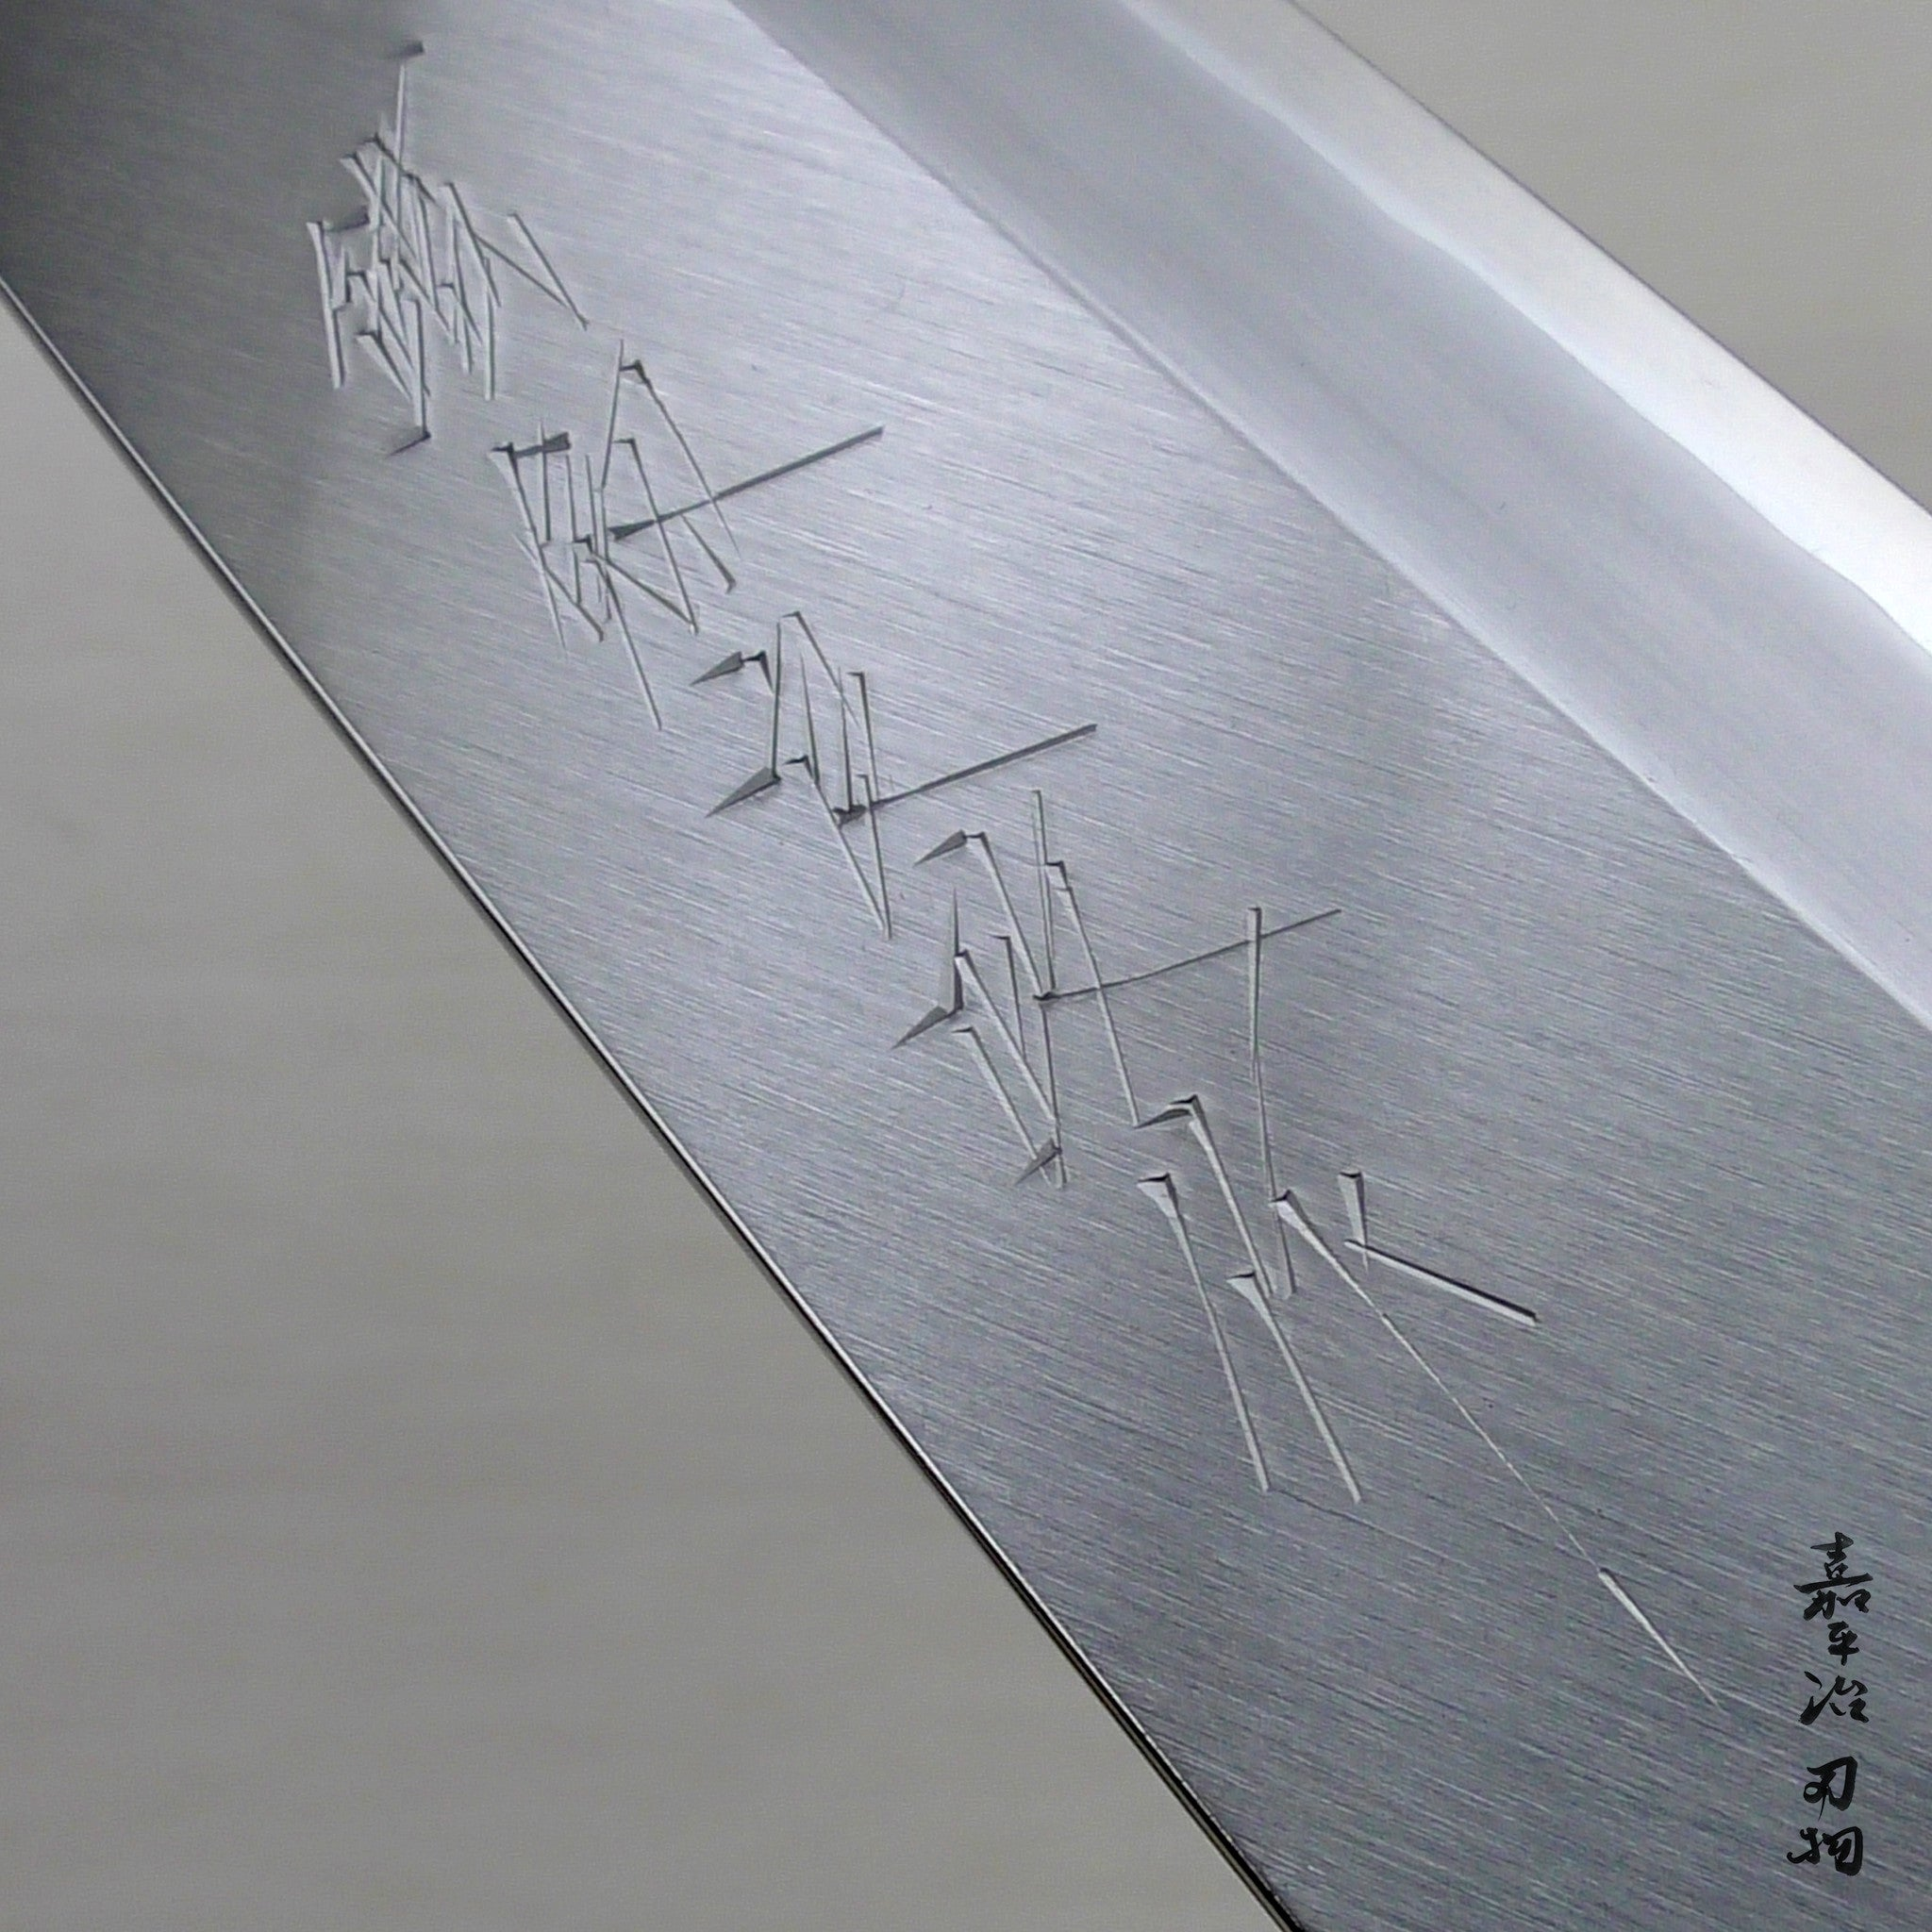 Tekken Yoshimasa VG10 HIT Damascus Hammered Gyuto Japanese Knife